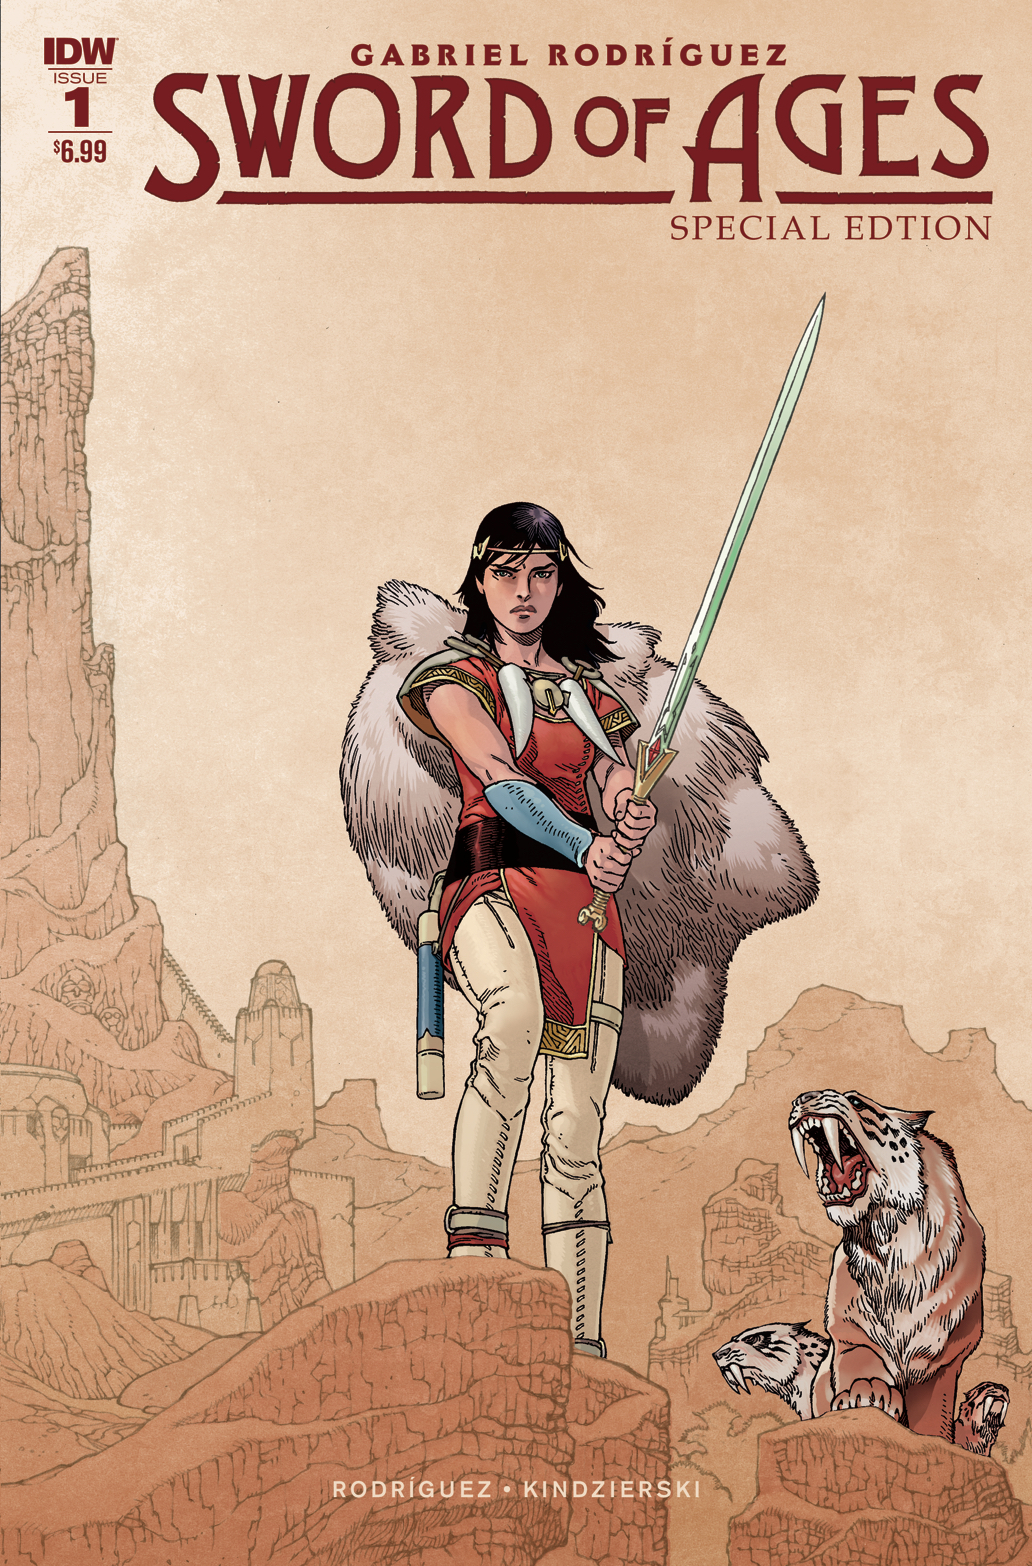 SWORD OF AGES SPECIAL EDITION #1 CVR A RODRIGUEZ